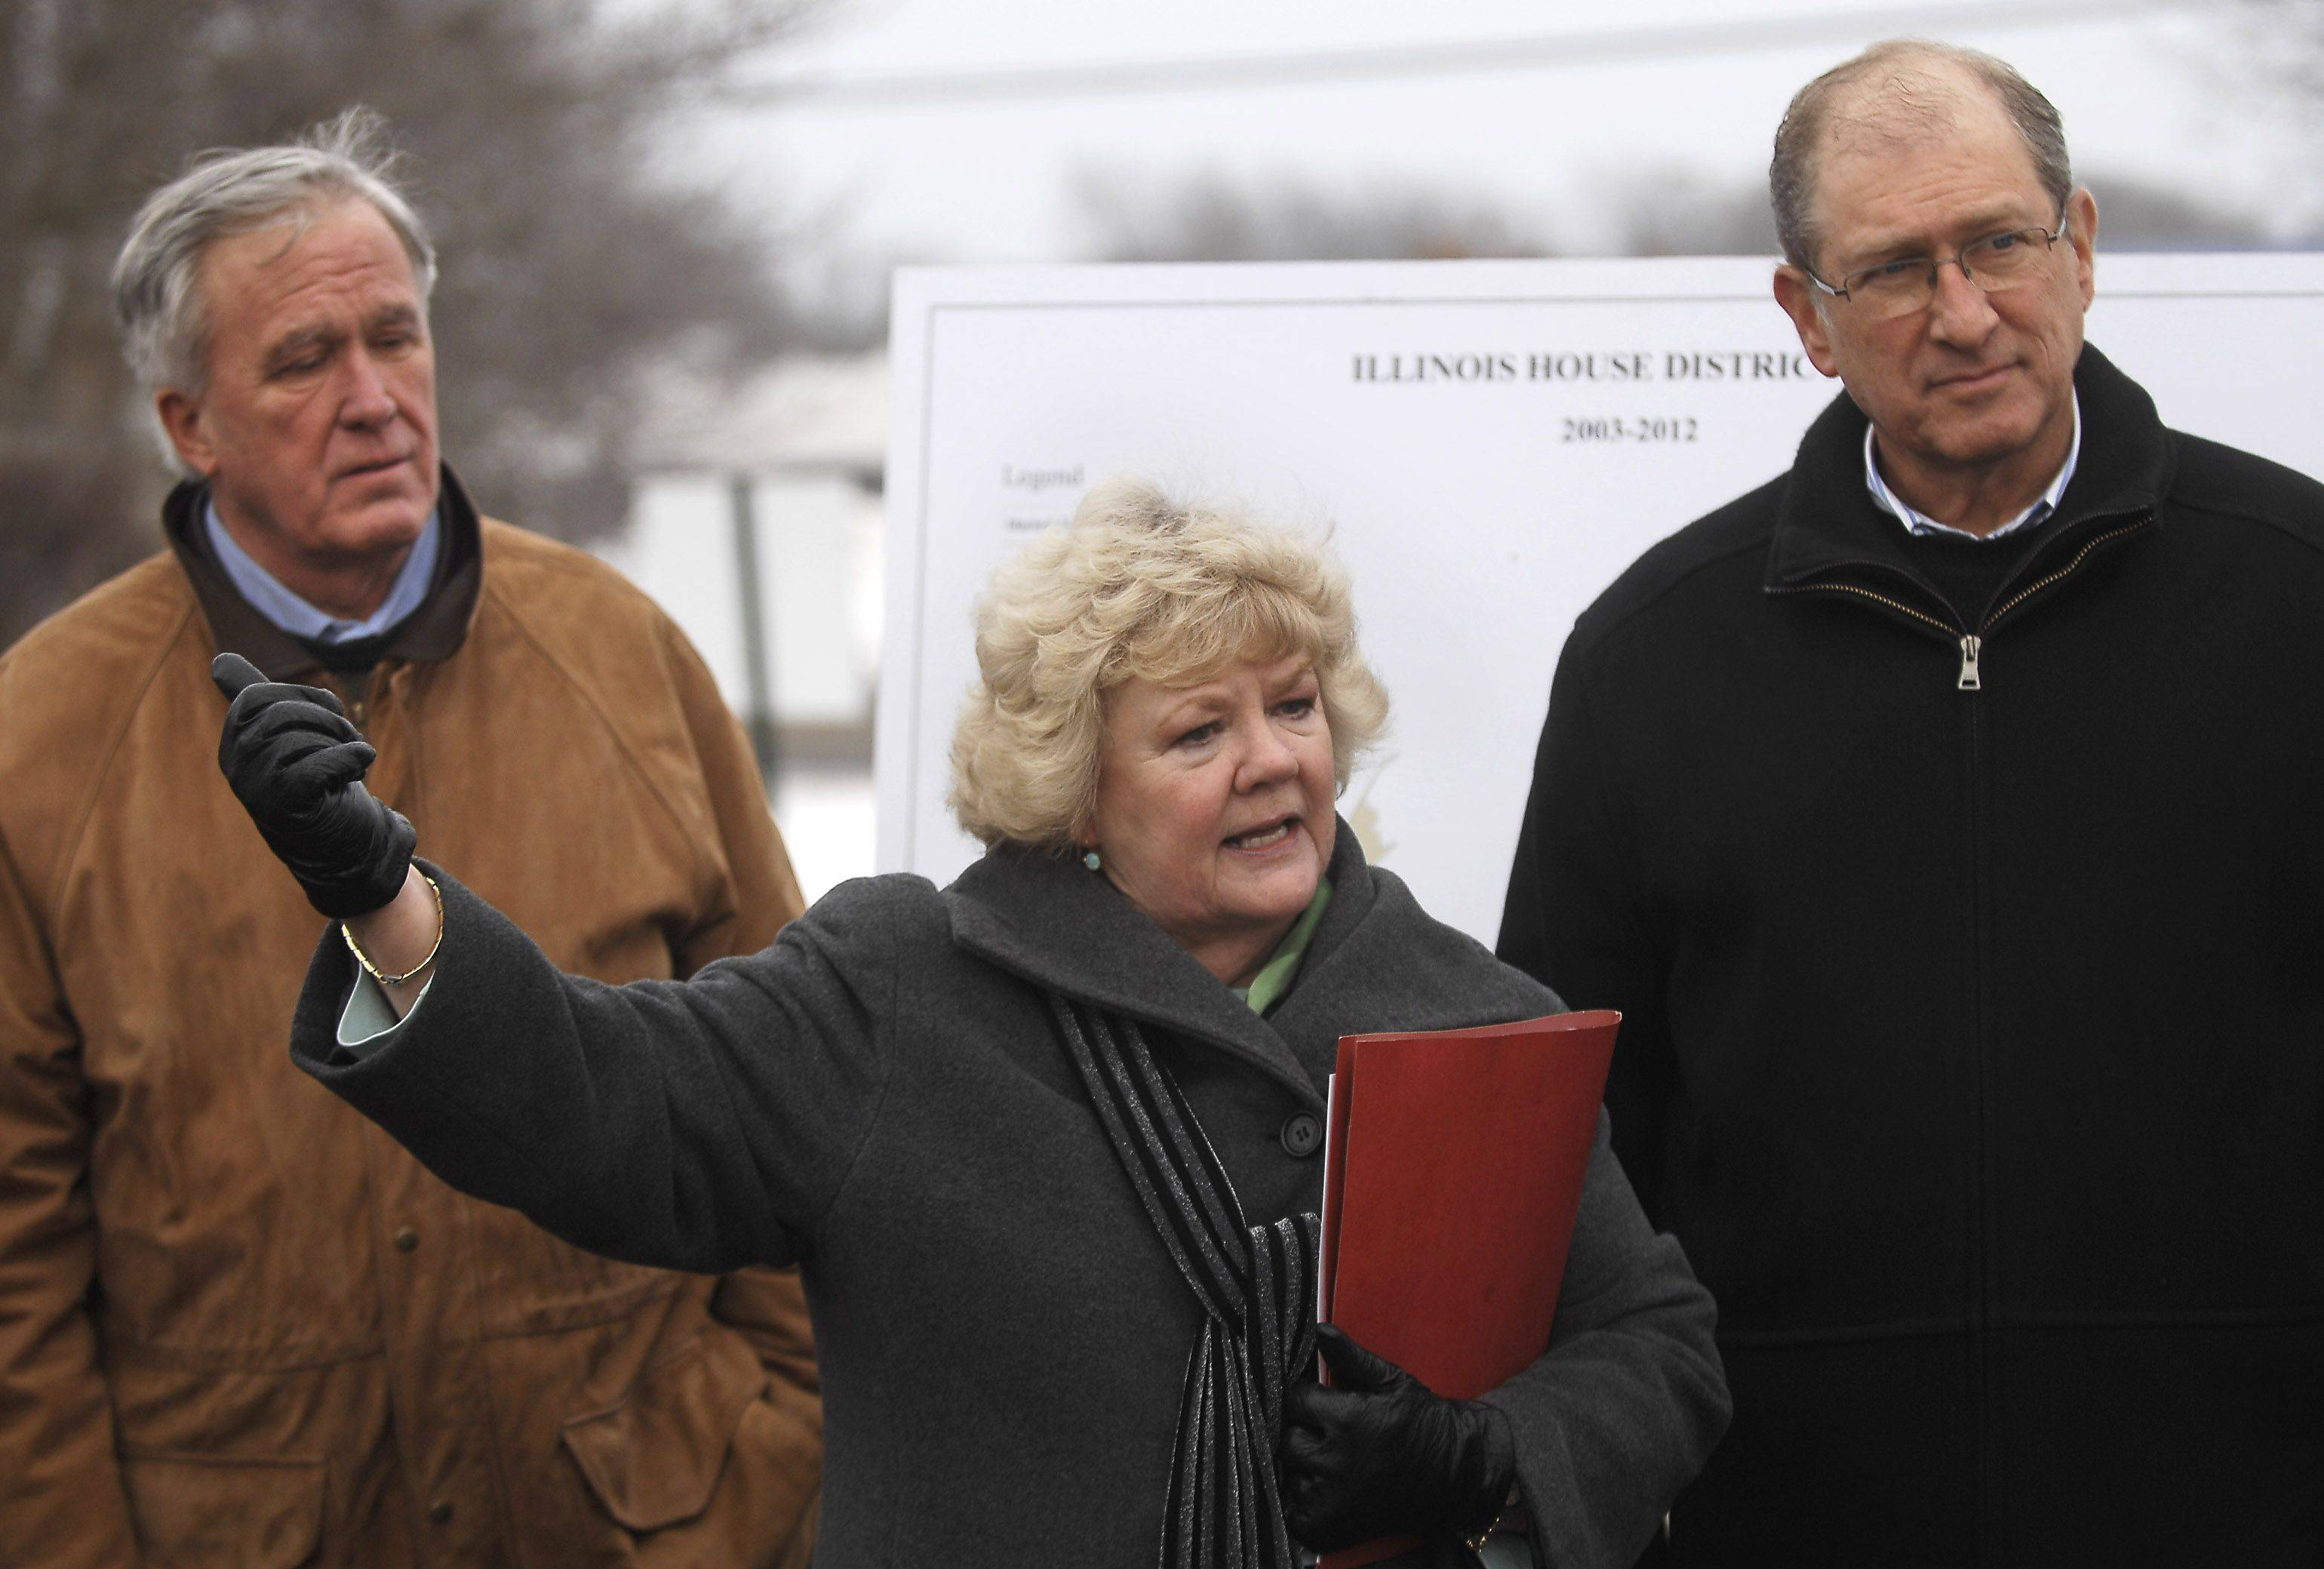 Funeral services will be held Friday for state Rep. Mark Beaubien, left, standing alongside with former state representative Suzie Bassi and state Rep. Sidney Mathias in January 2010. Beaubien died Sunday after collapsing at a GOP fundraiser in Arlington Heights.